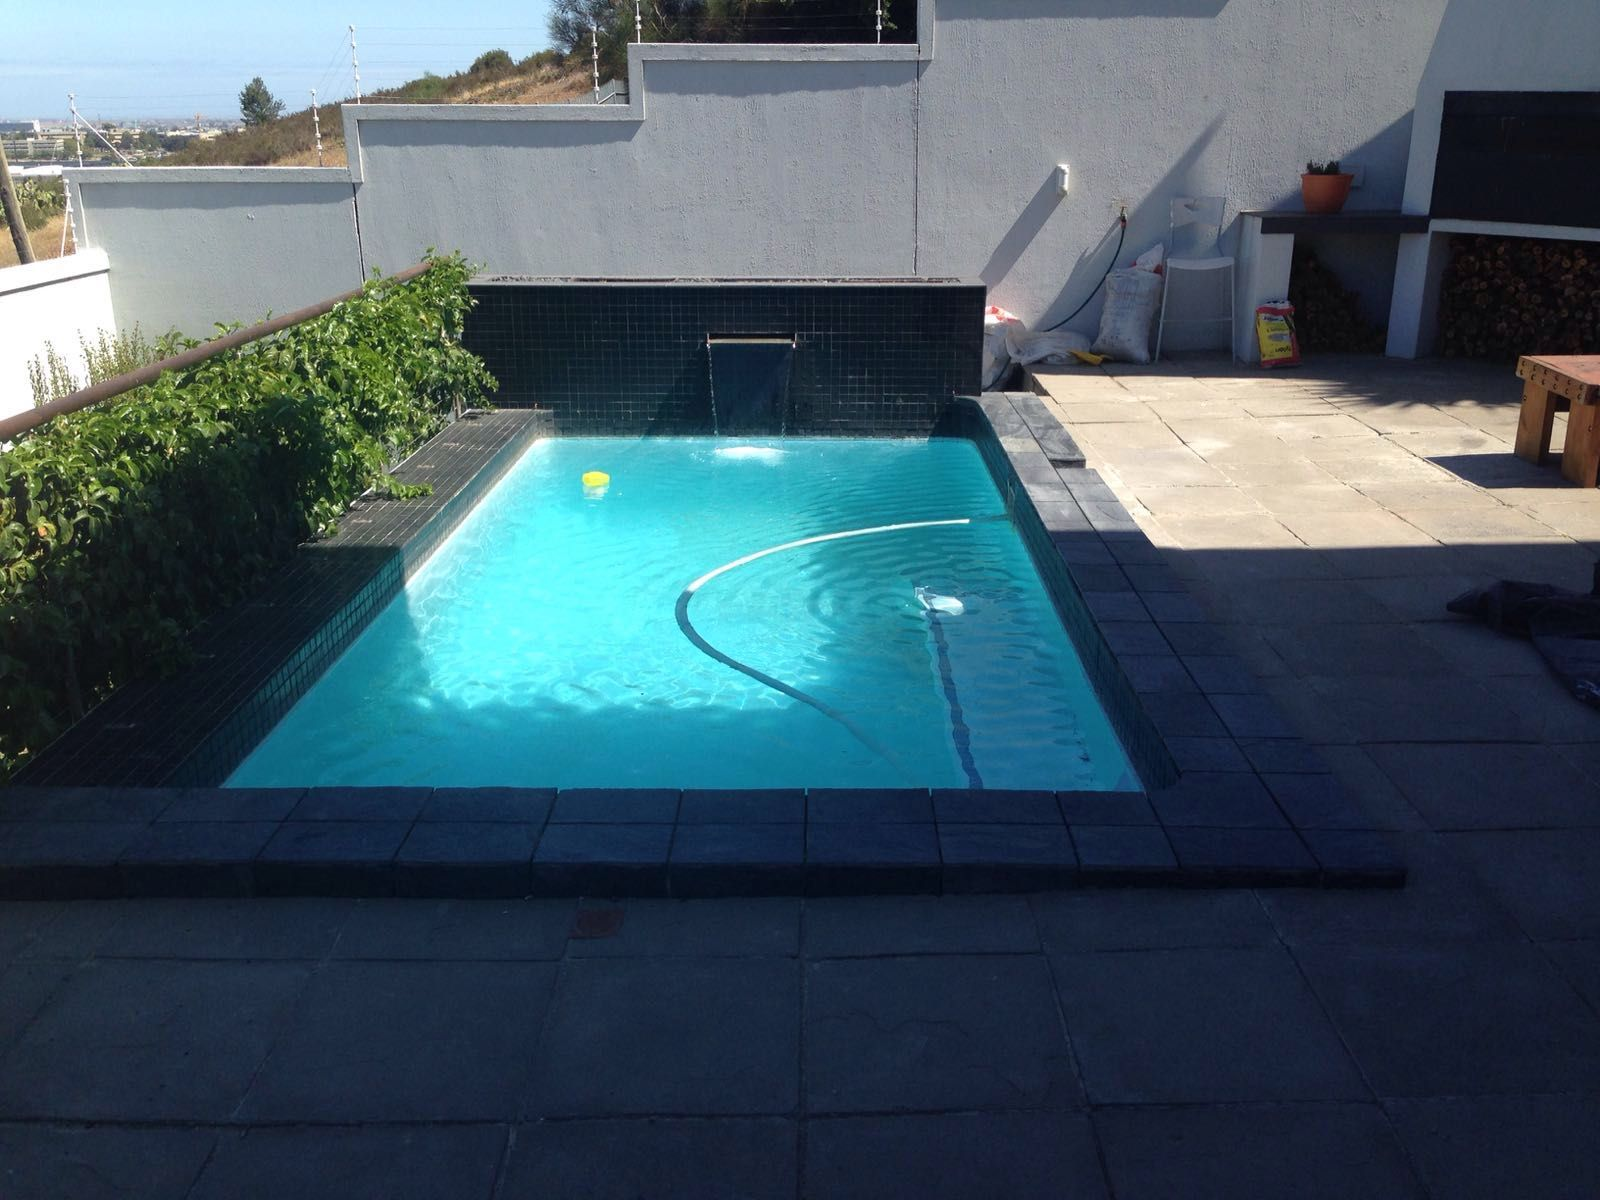 Pool Coping Re Tiled With Black Slate Tiles And Black